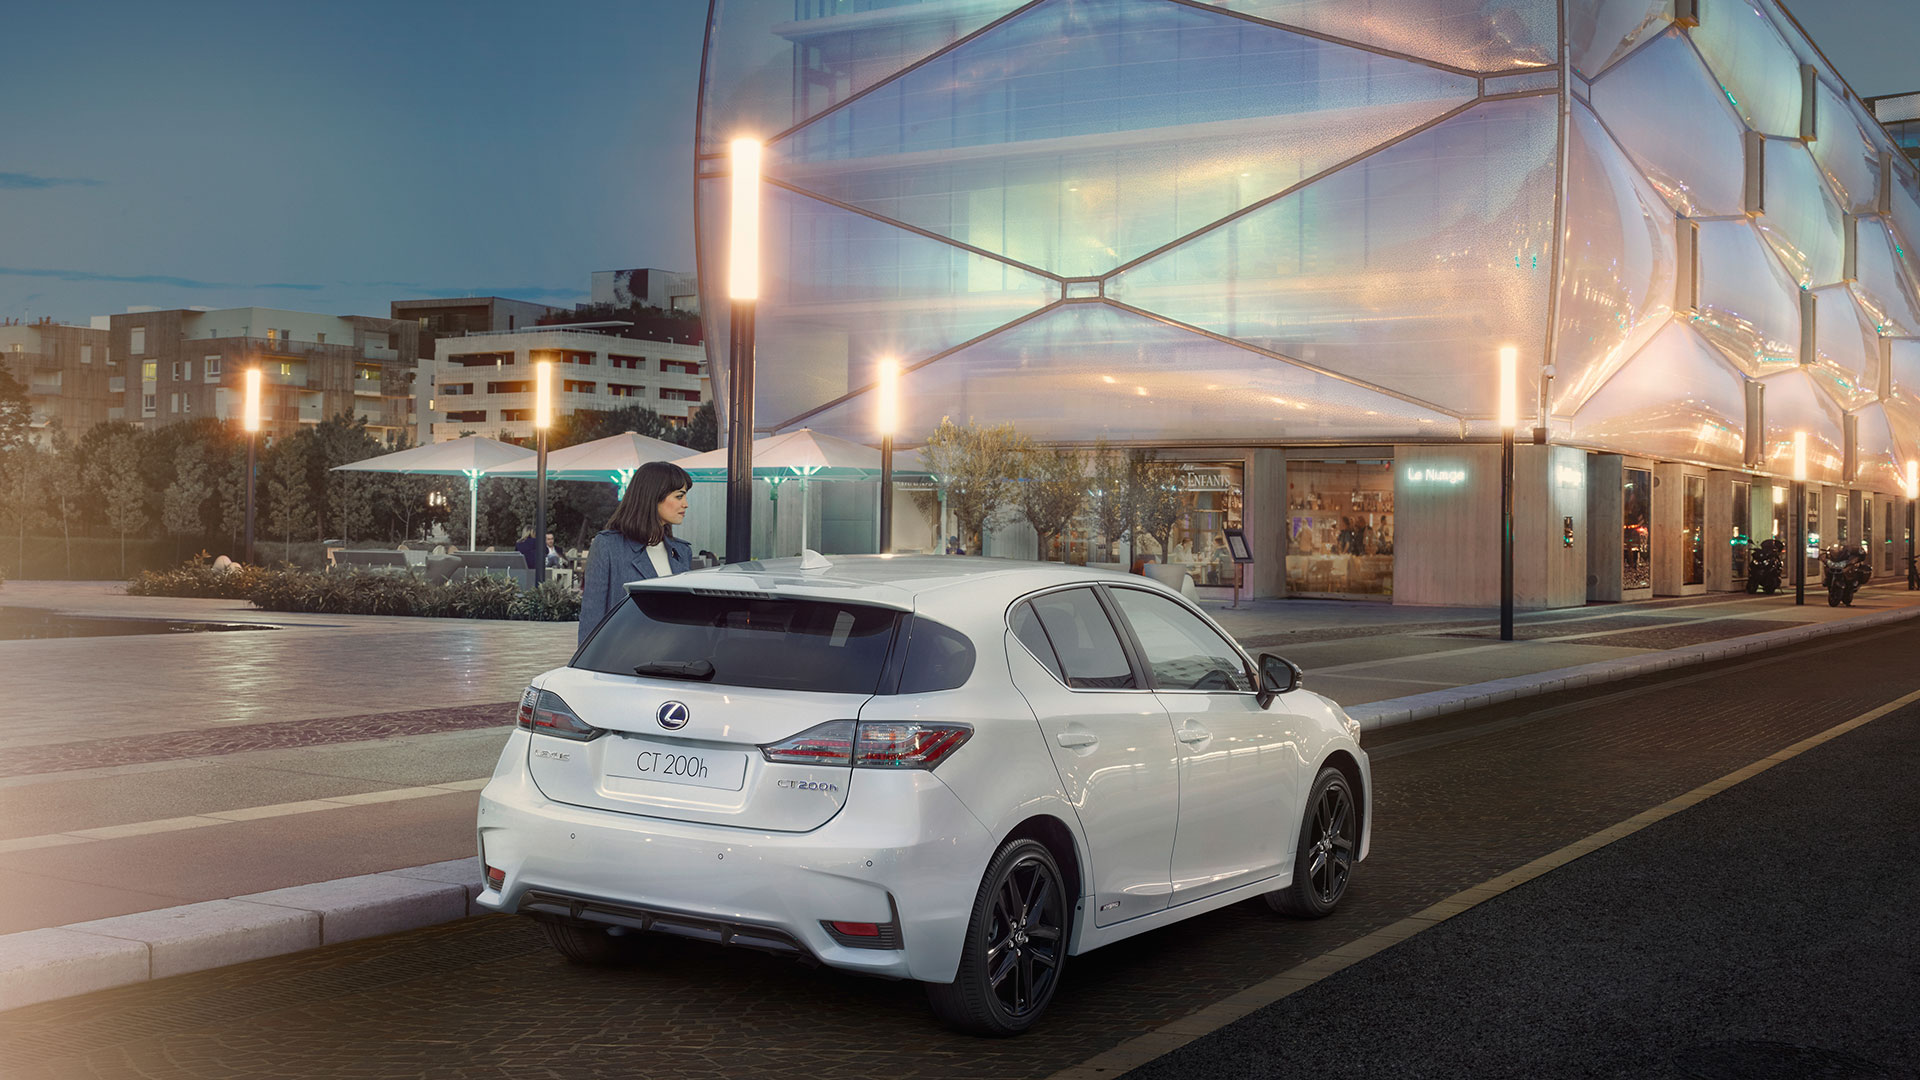 Lexus CT 200h Inteligencia Full Hybrids hero asset